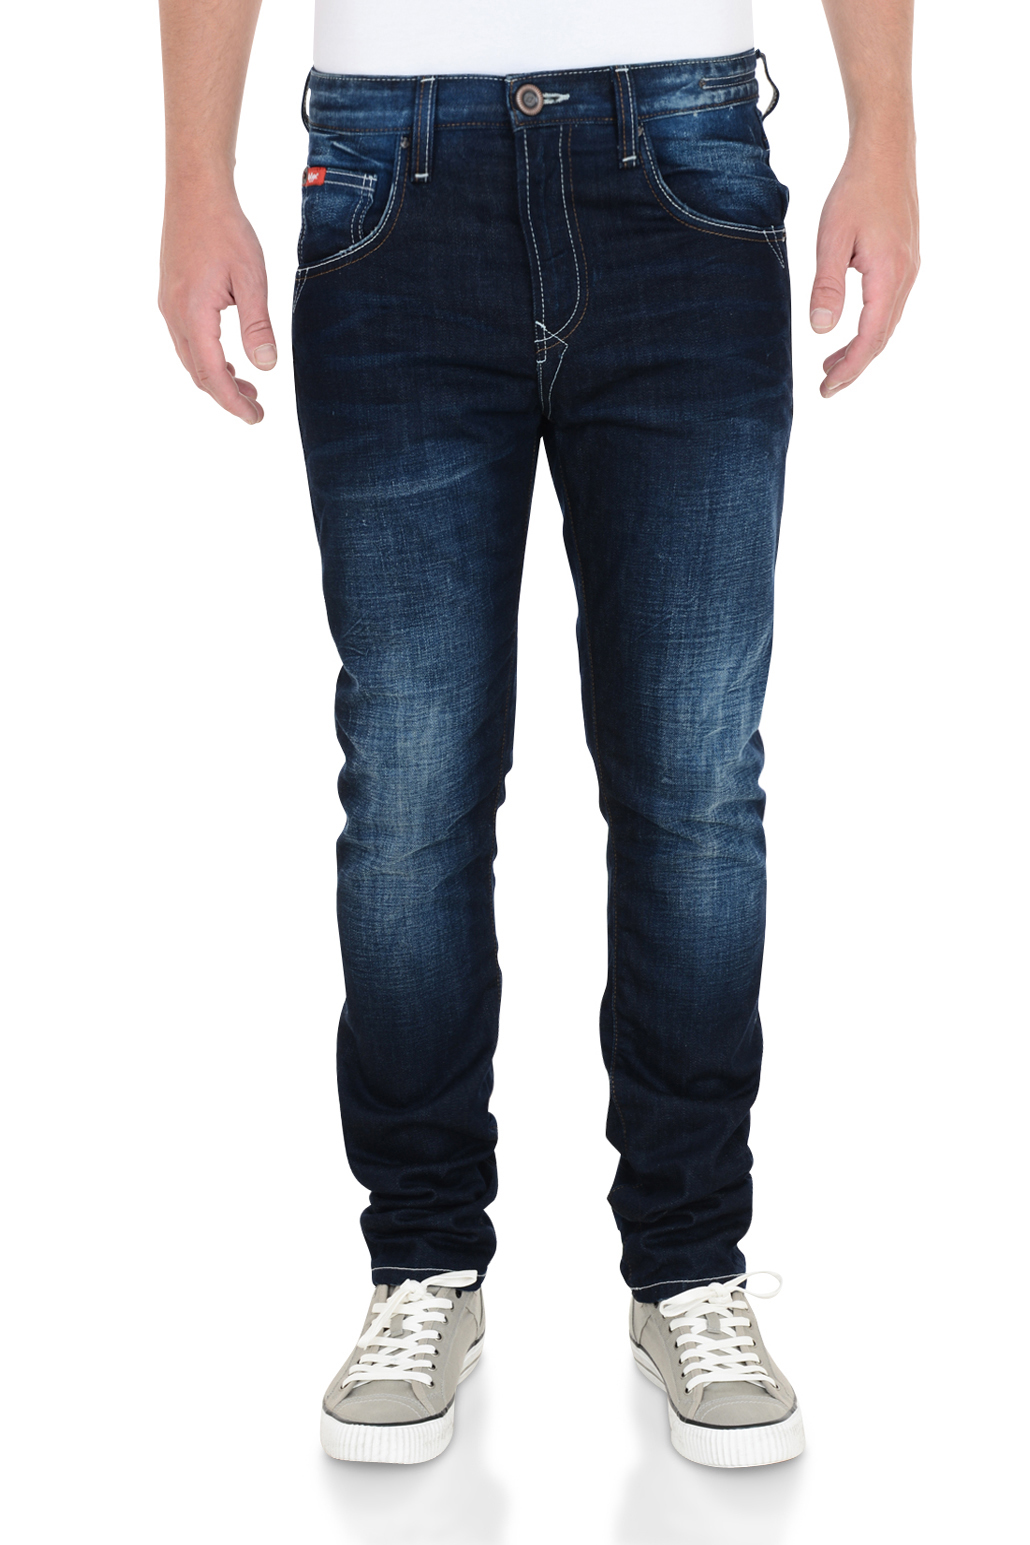 lee cooper fashion jeans men�s new slim tapered fit